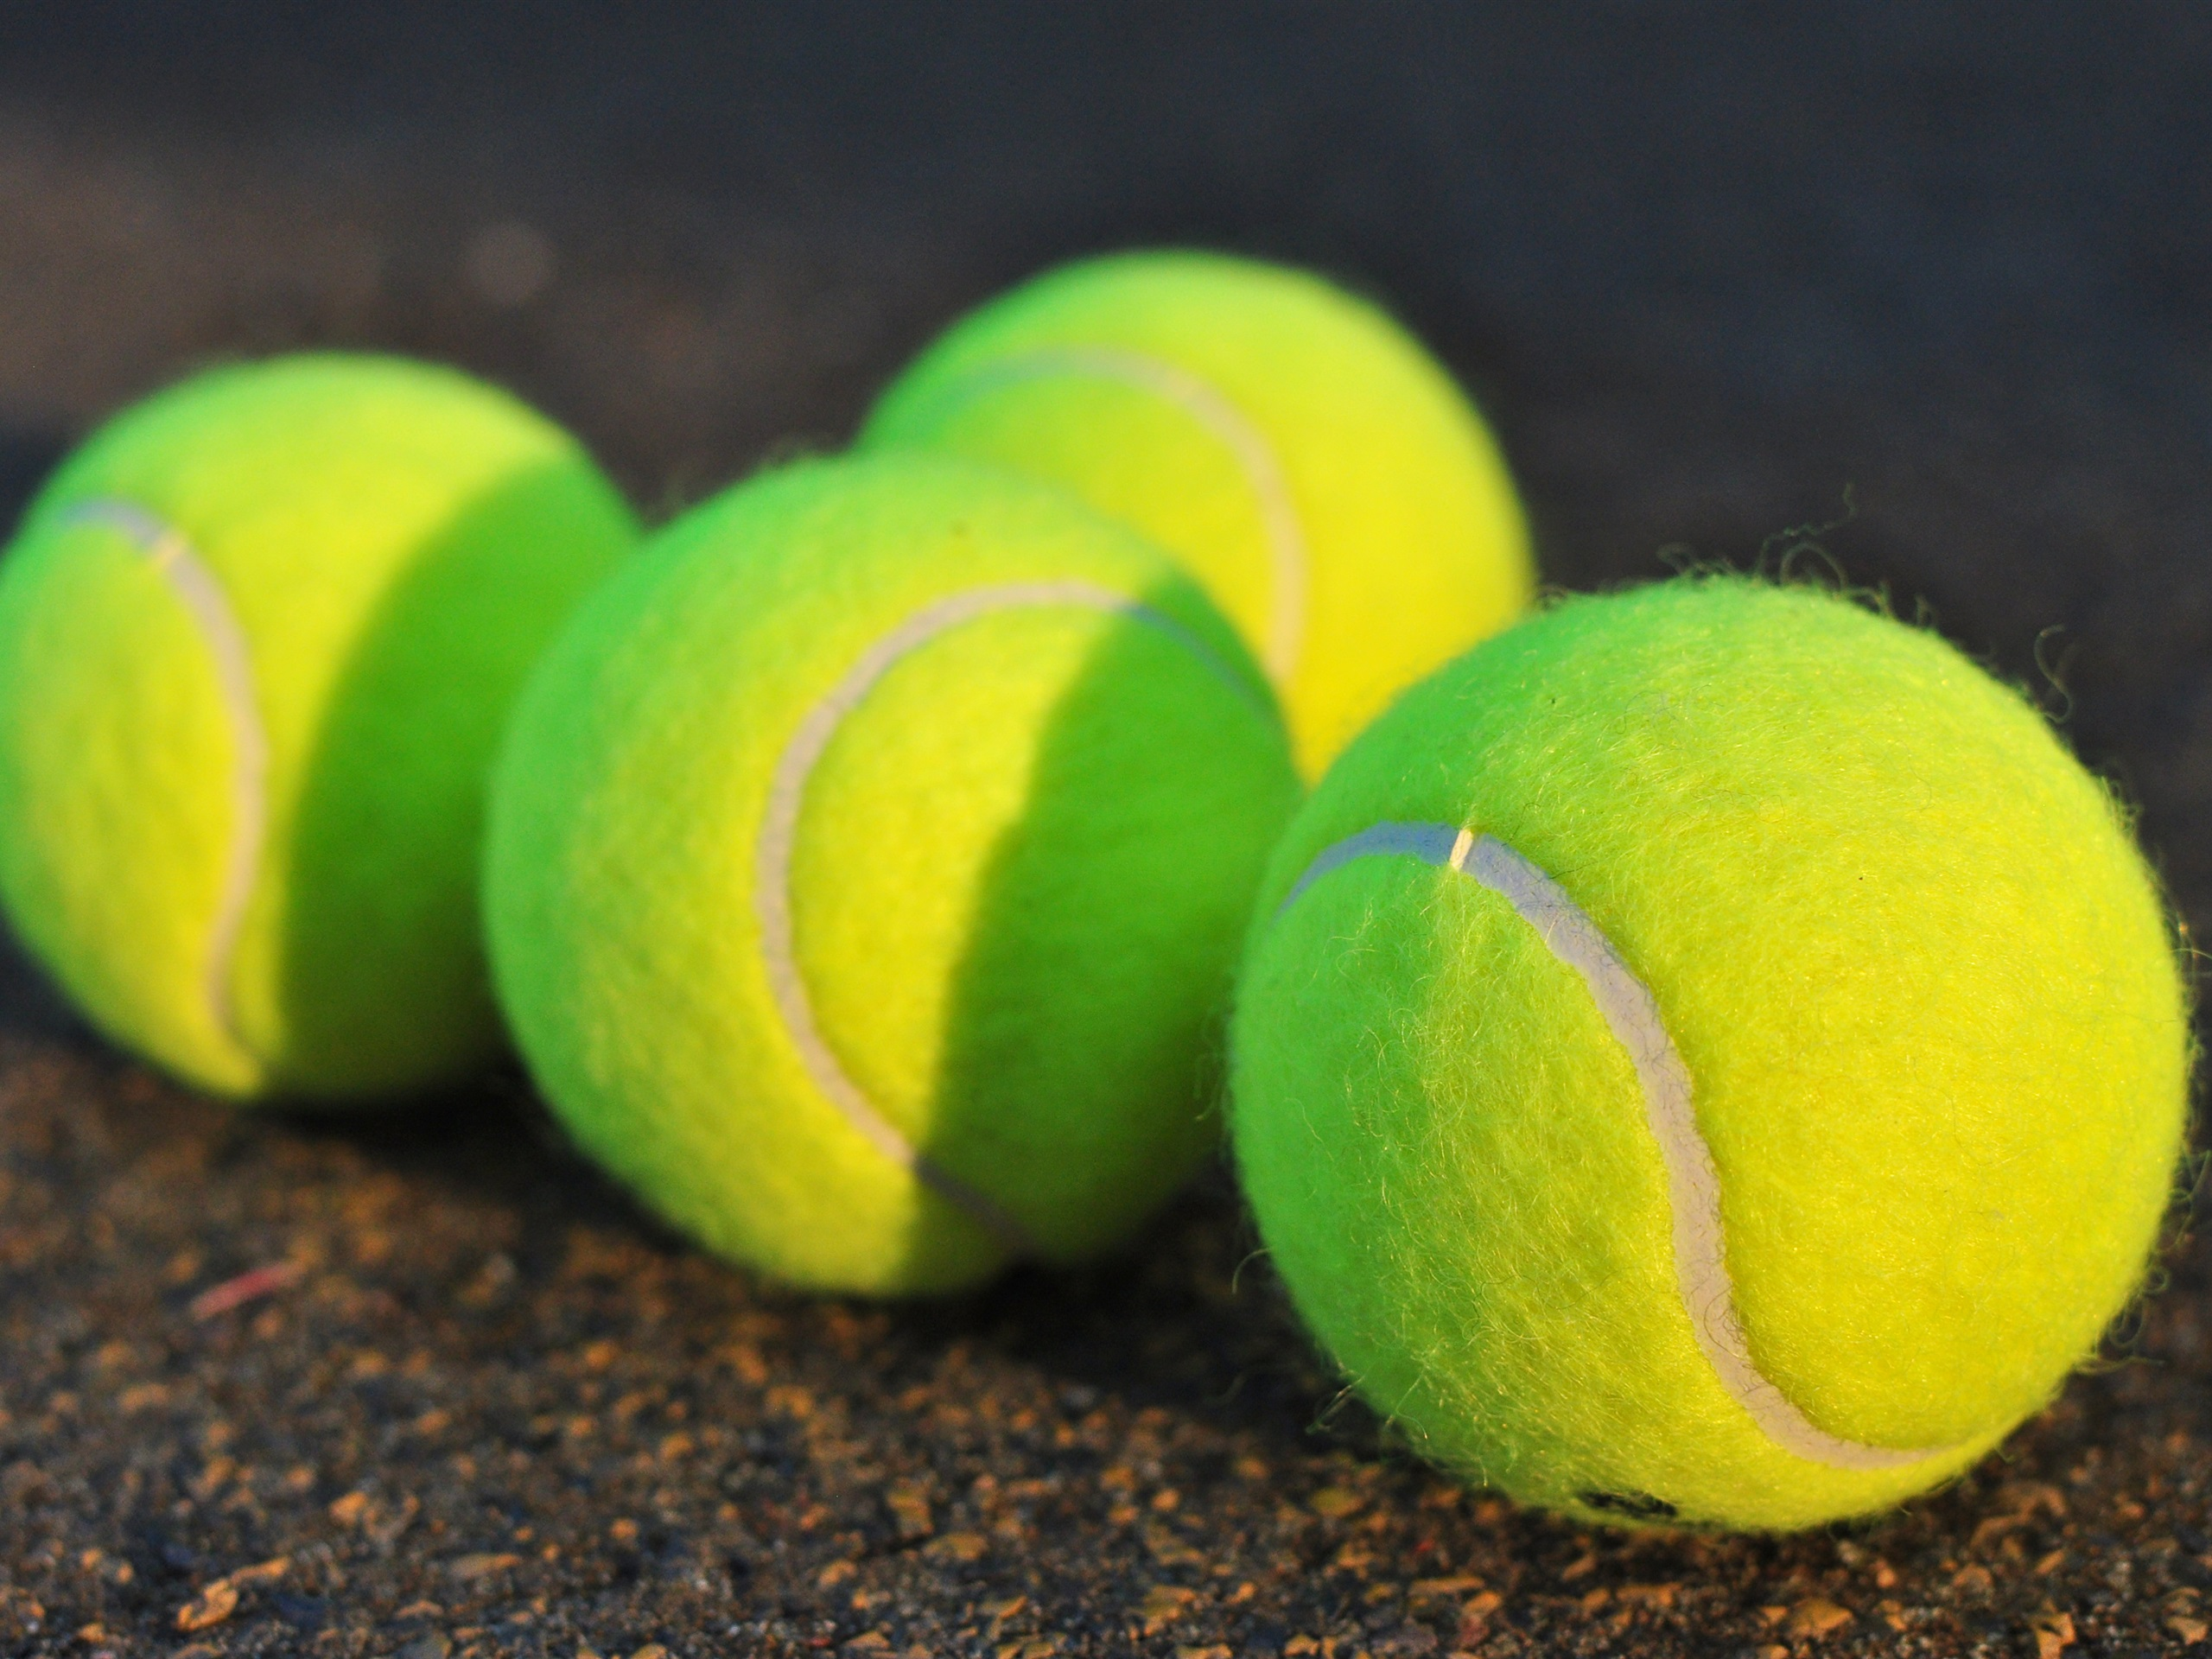 Wallpaper Tennis Close Up 3840x2160 Uhd 4k Picture Image